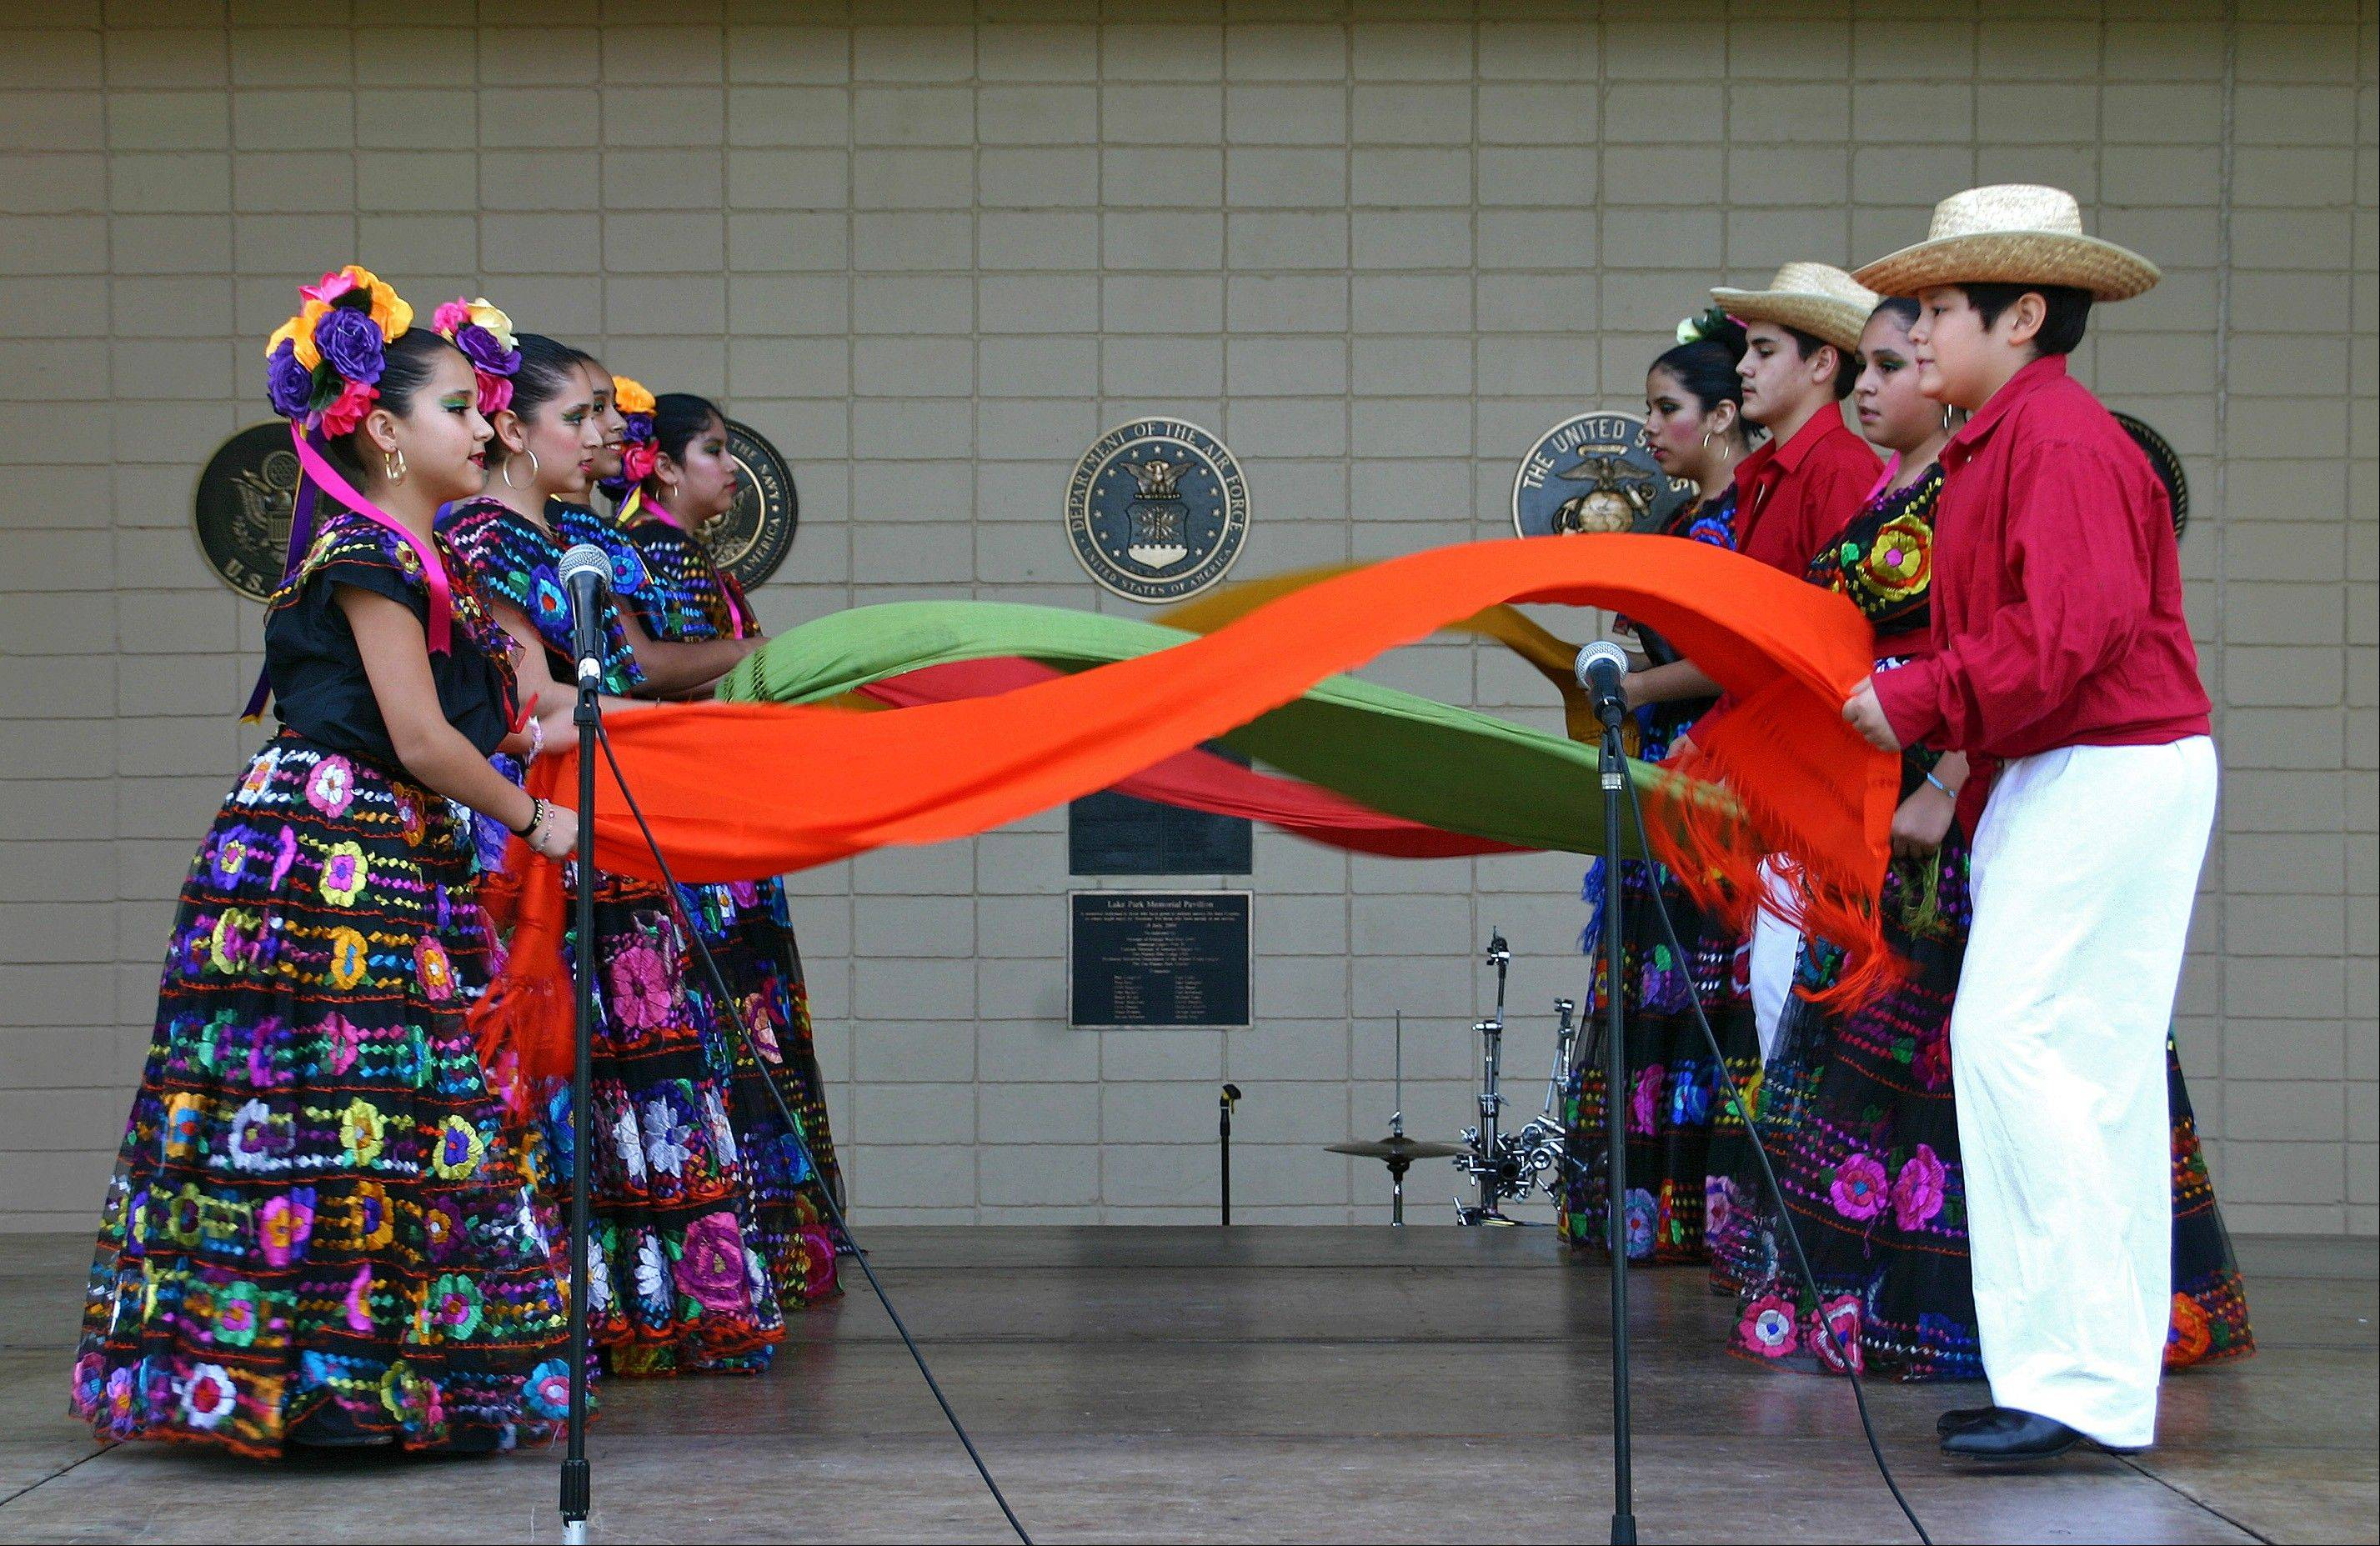 Ballet Sol Azteca will perform authentic Mexican dances in traditional costumes.